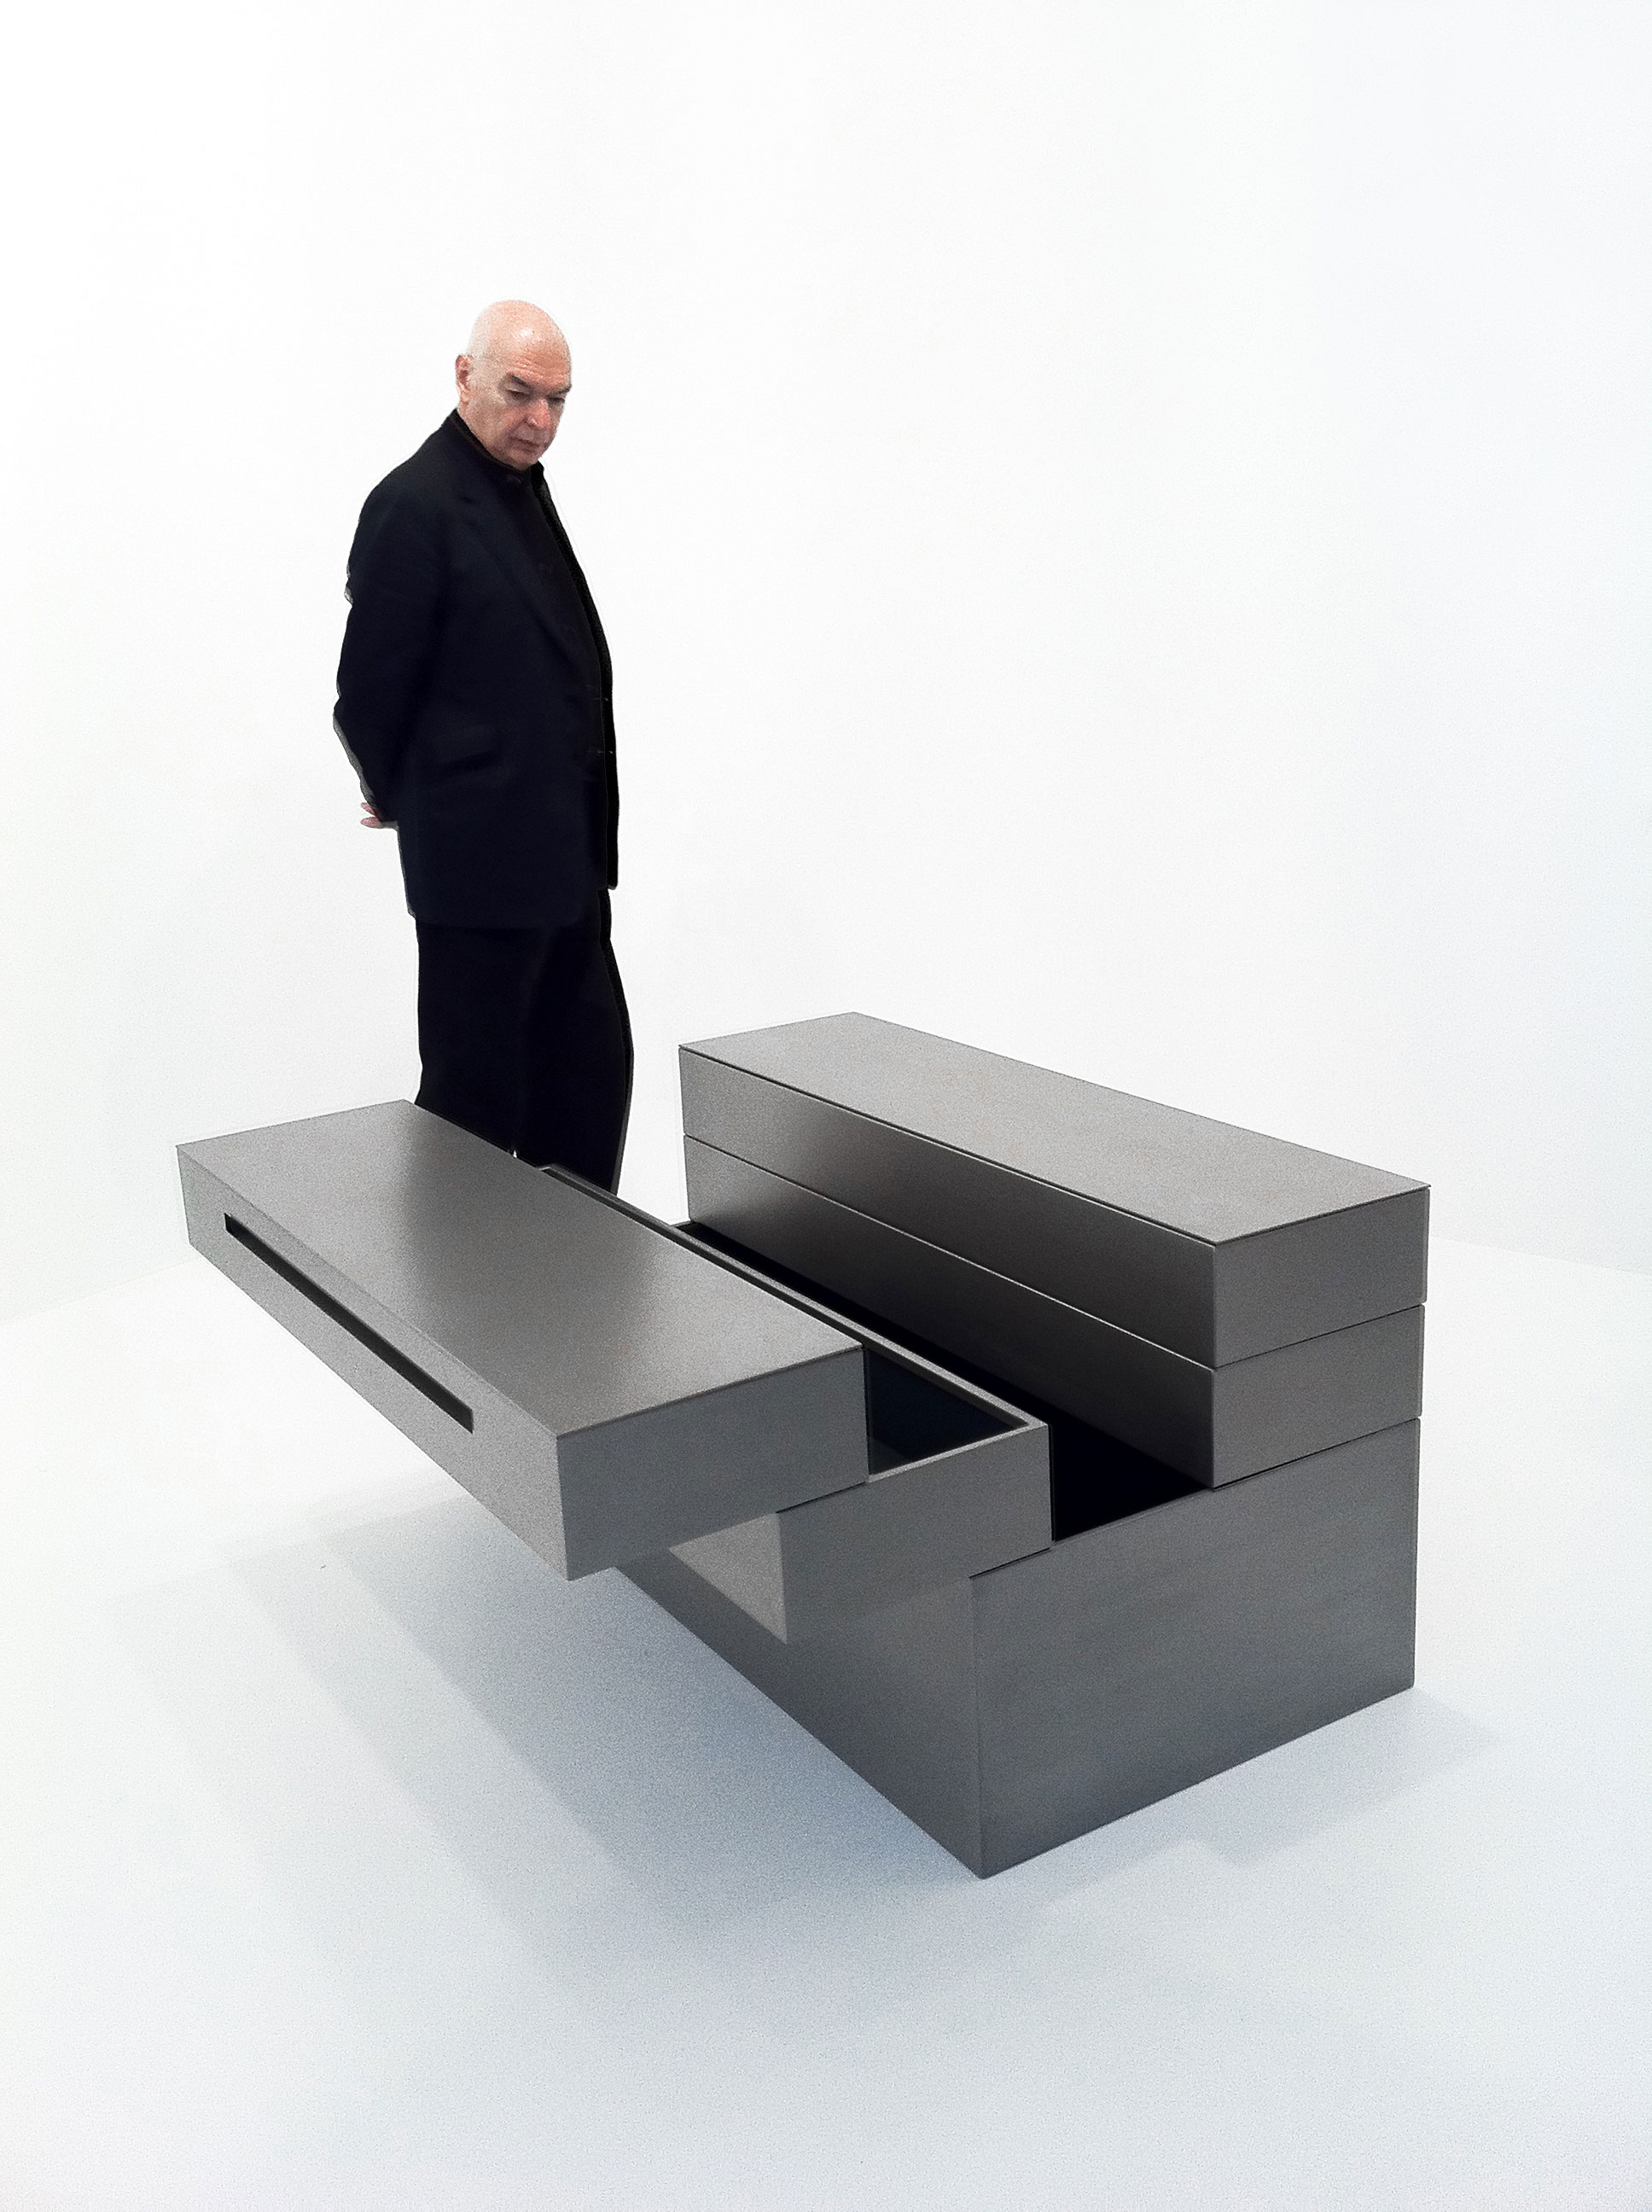 bo te outils jean nouvel design. Black Bedroom Furniture Sets. Home Design Ideas